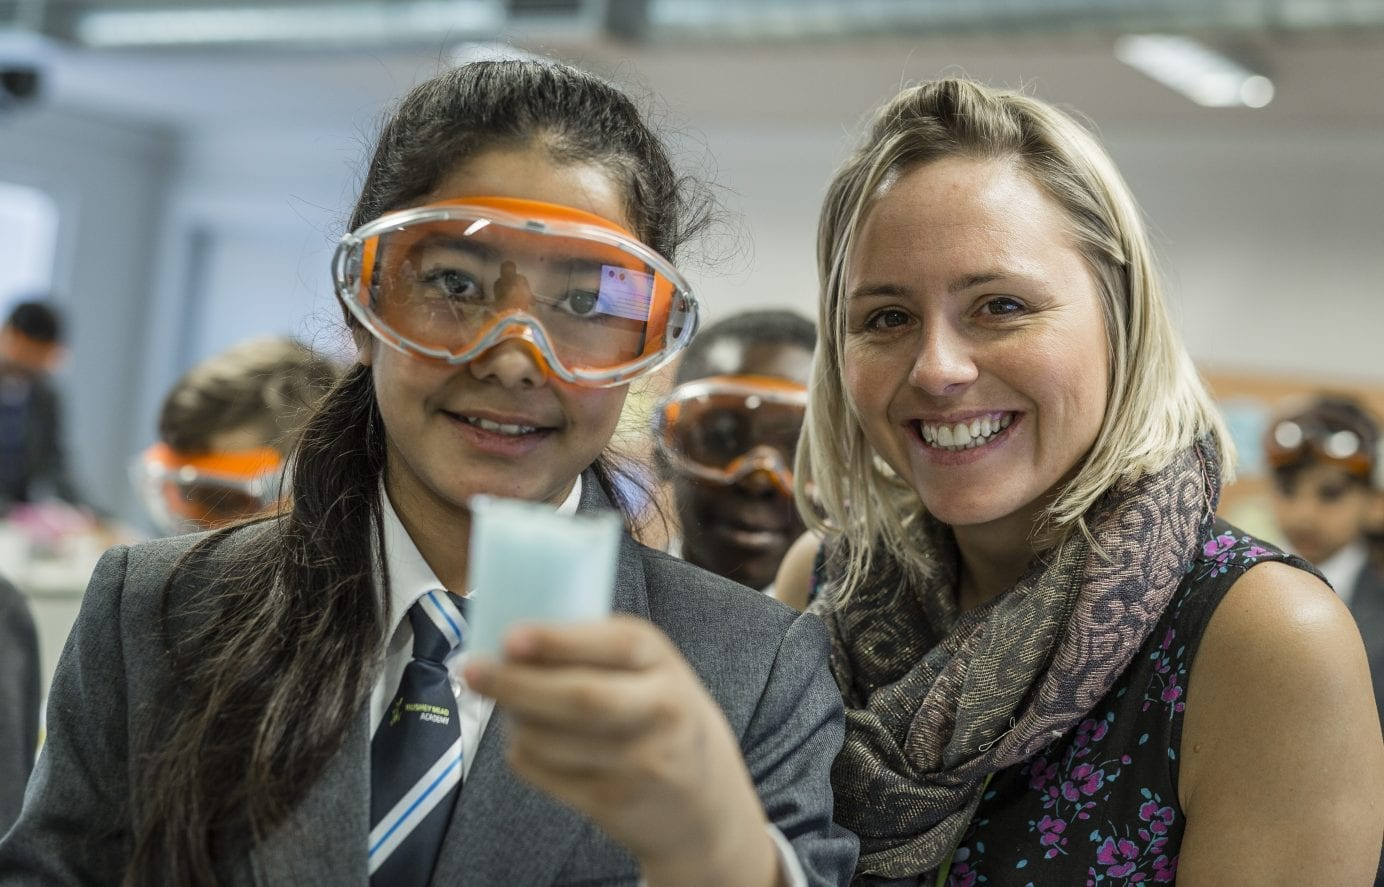 A trainee teacher smiling at the camera, working with a student to make bath bombs